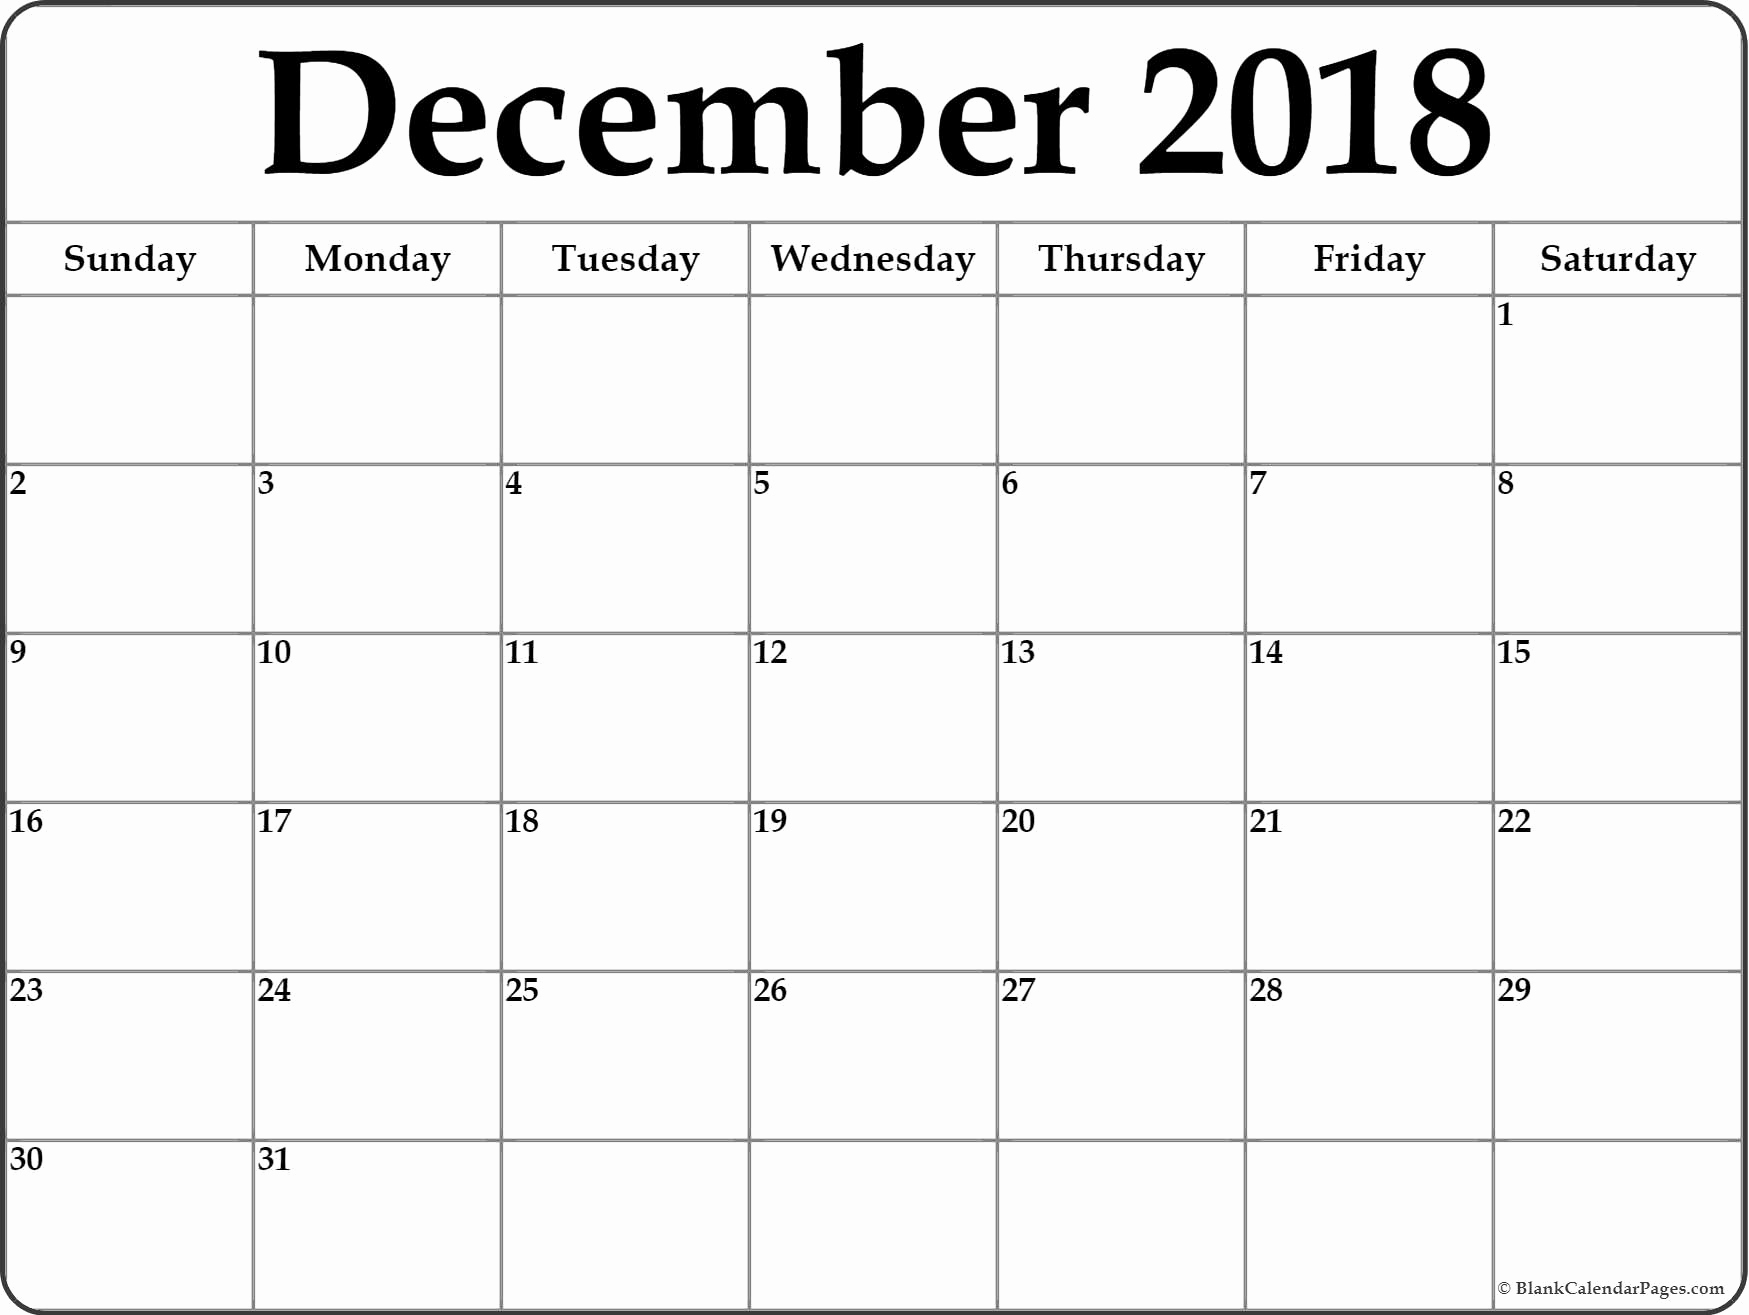 December Calendar 2018 For Office Printout